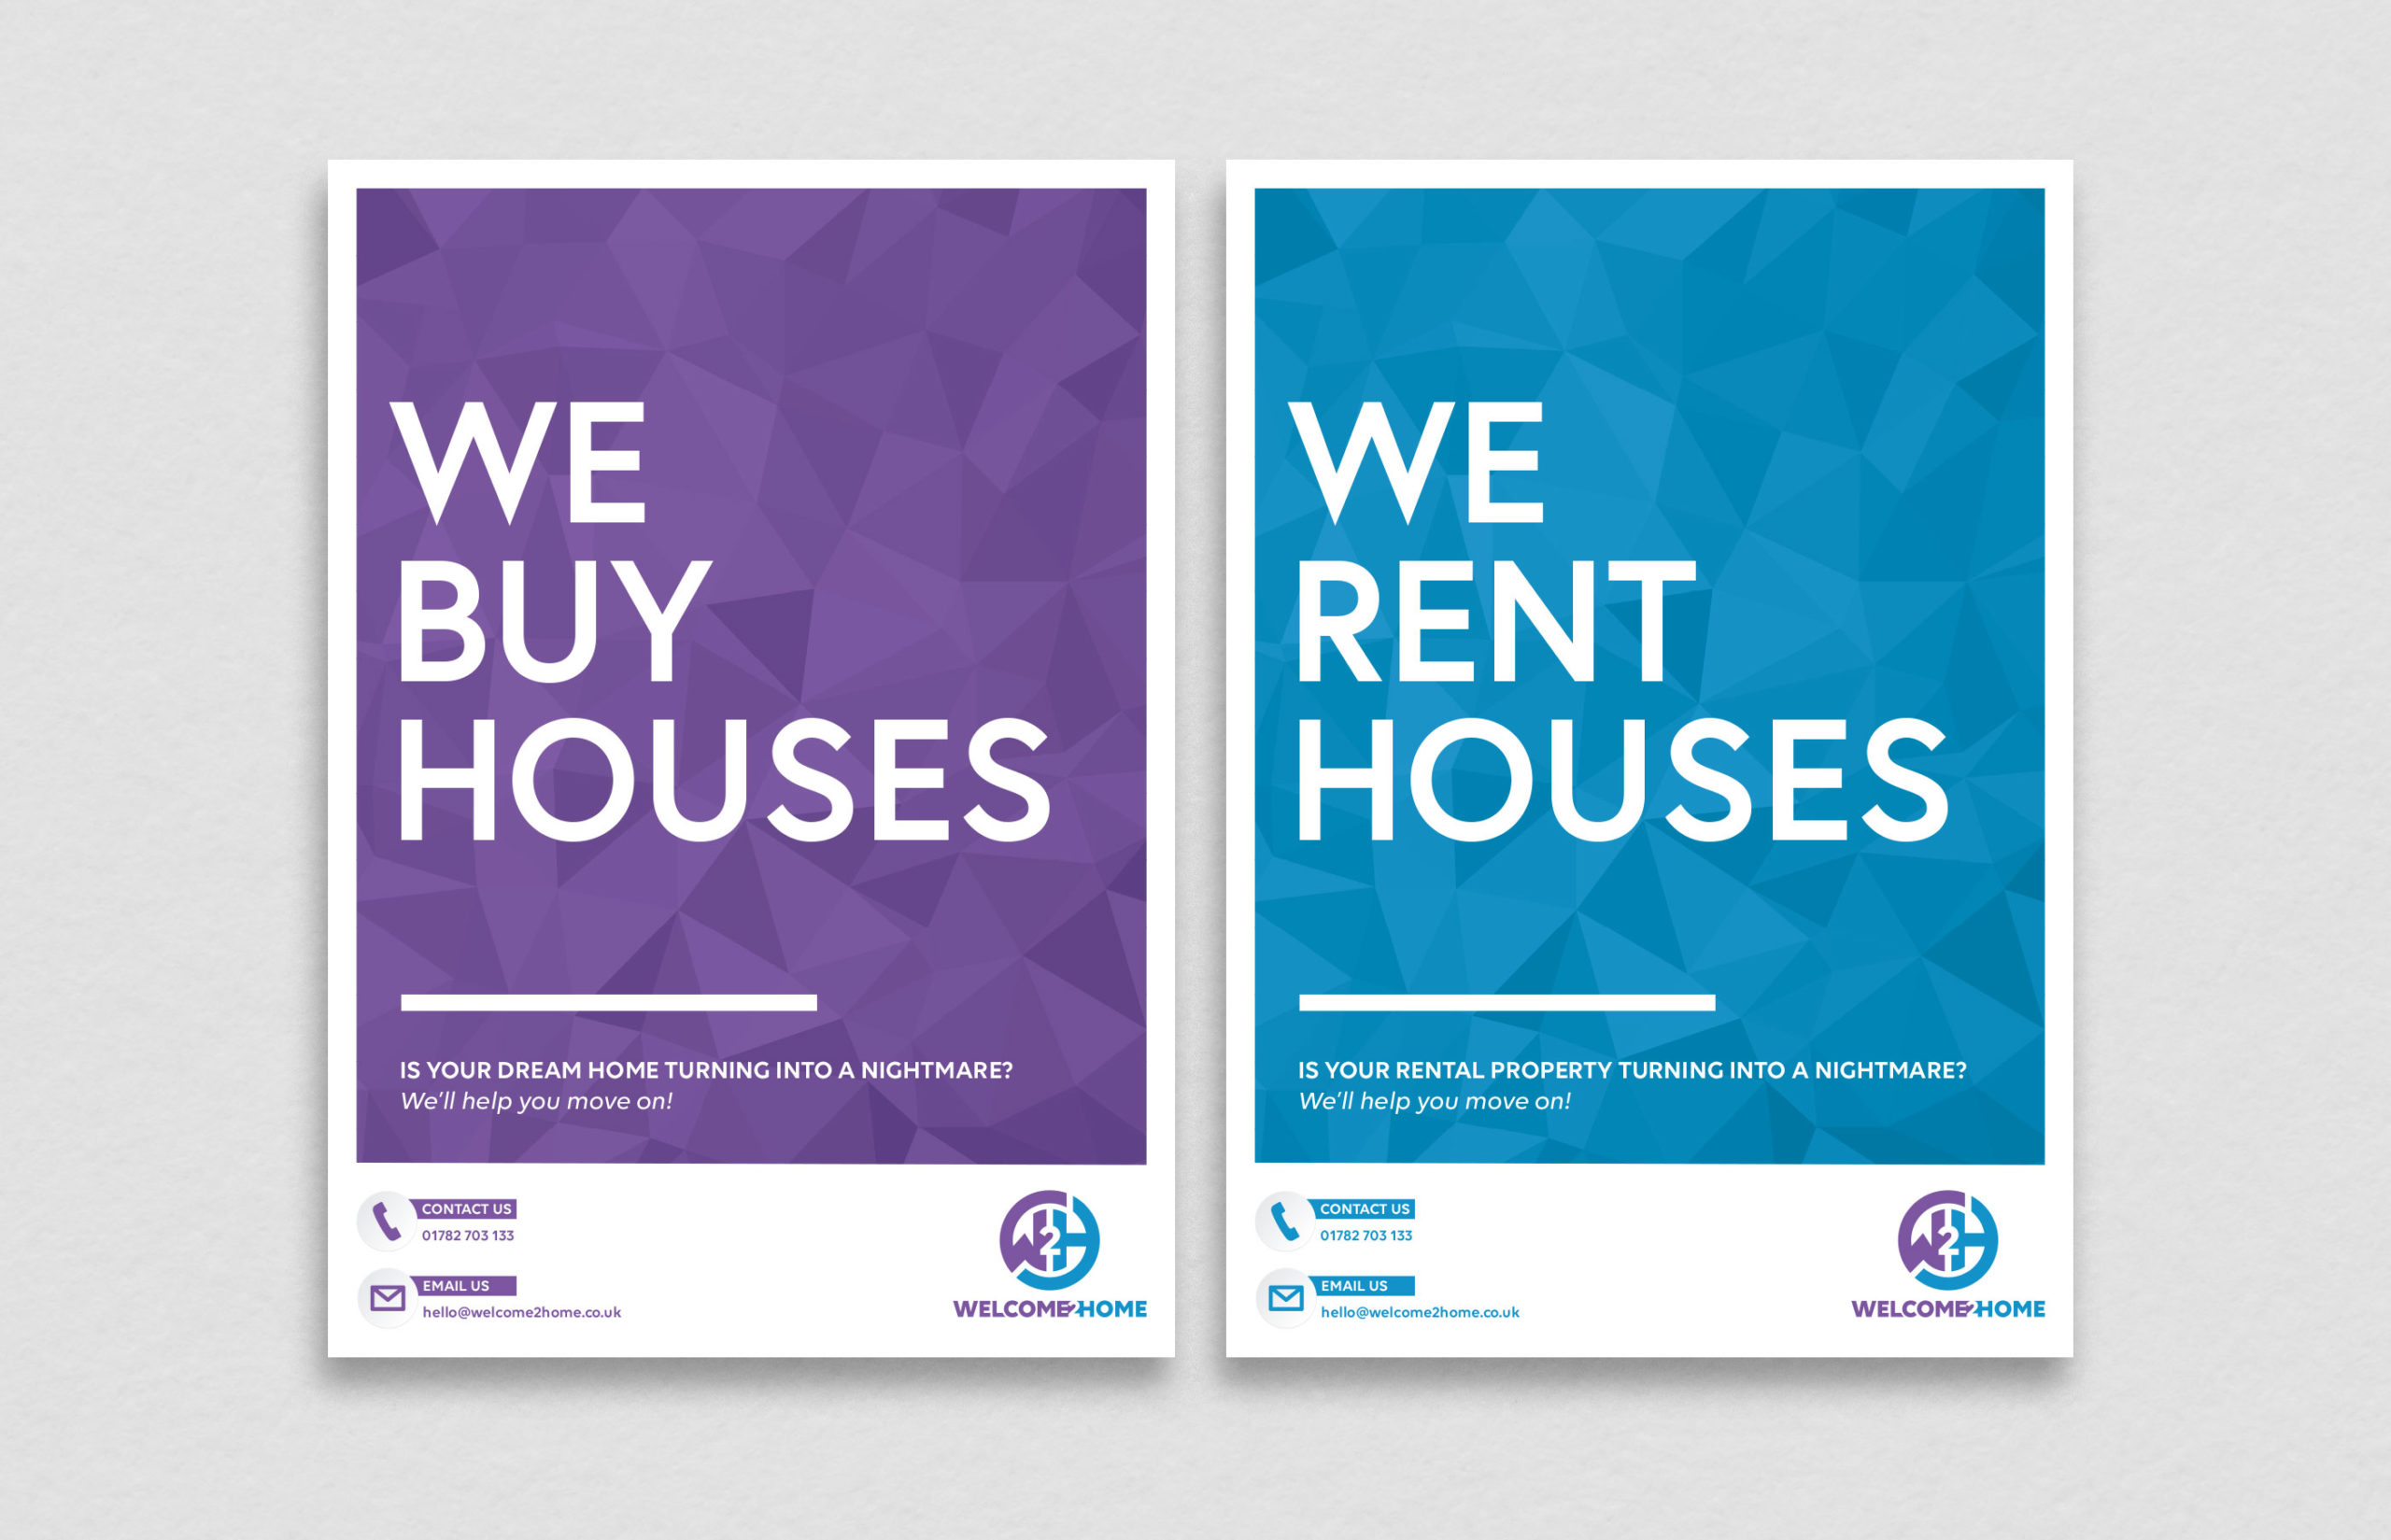 Poster Ad for Property Business designed by BONB Creative & Design